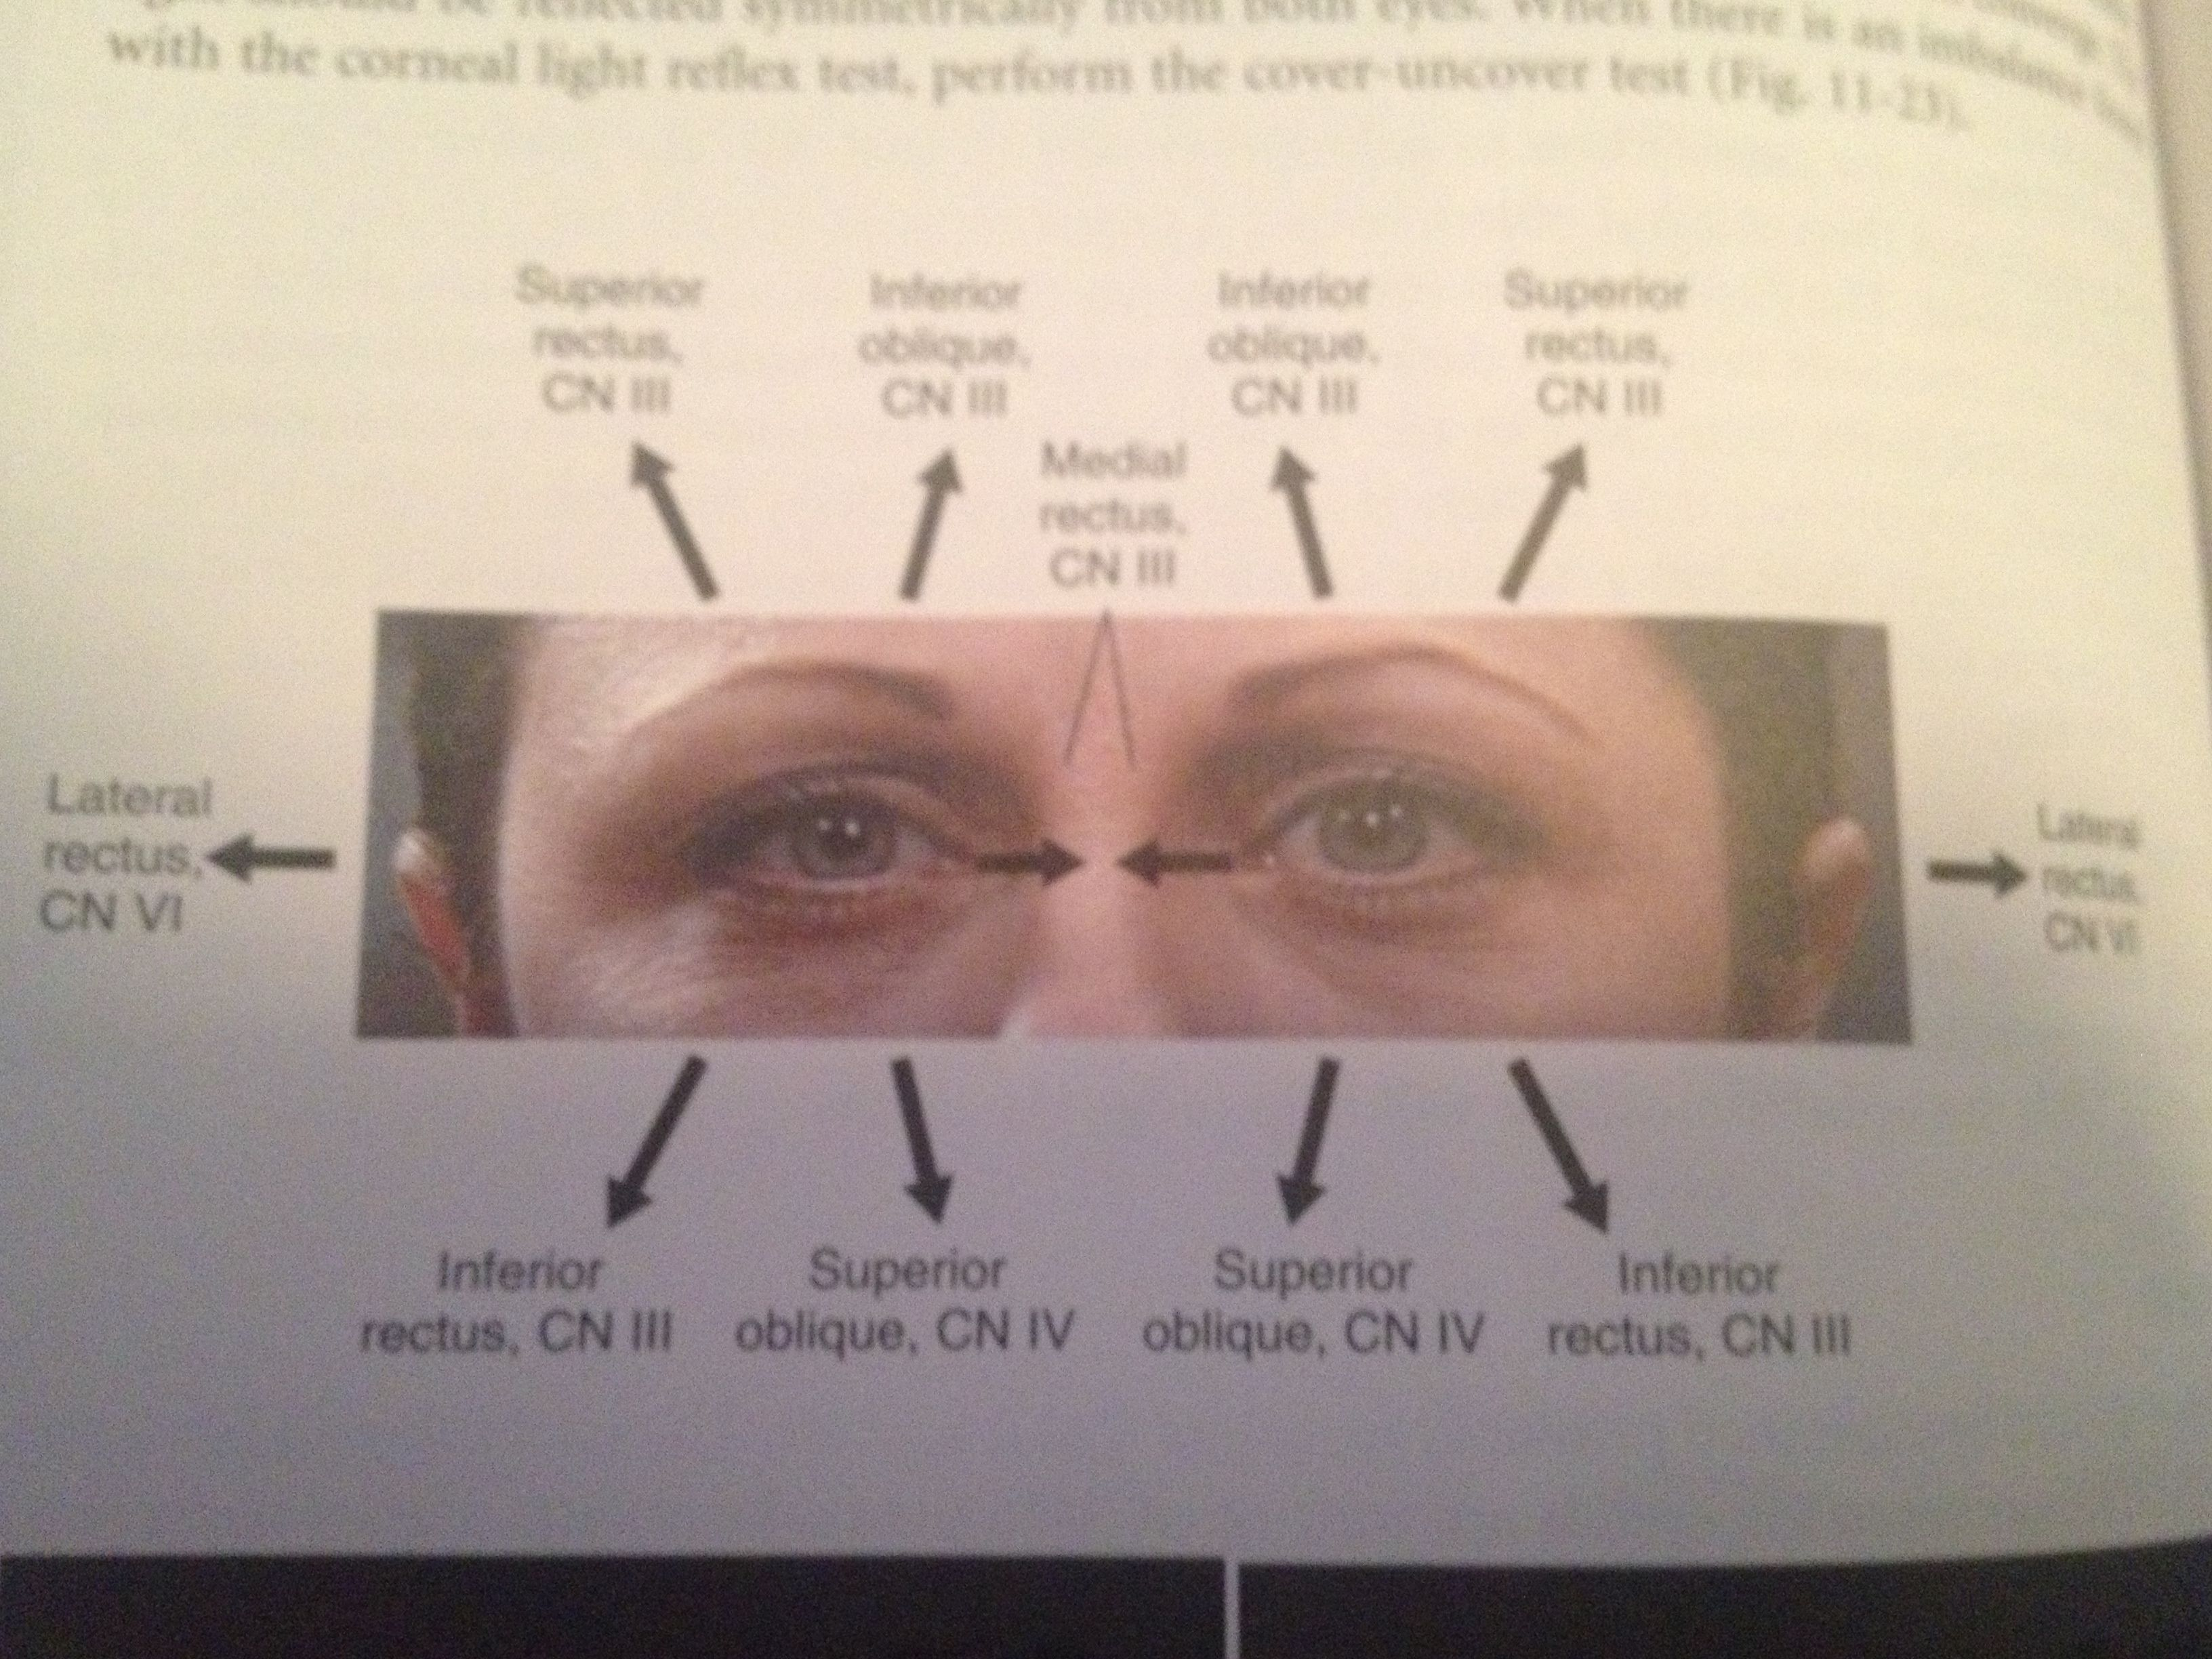 Cranial nerves tested with ocular motion nursing school pinterest